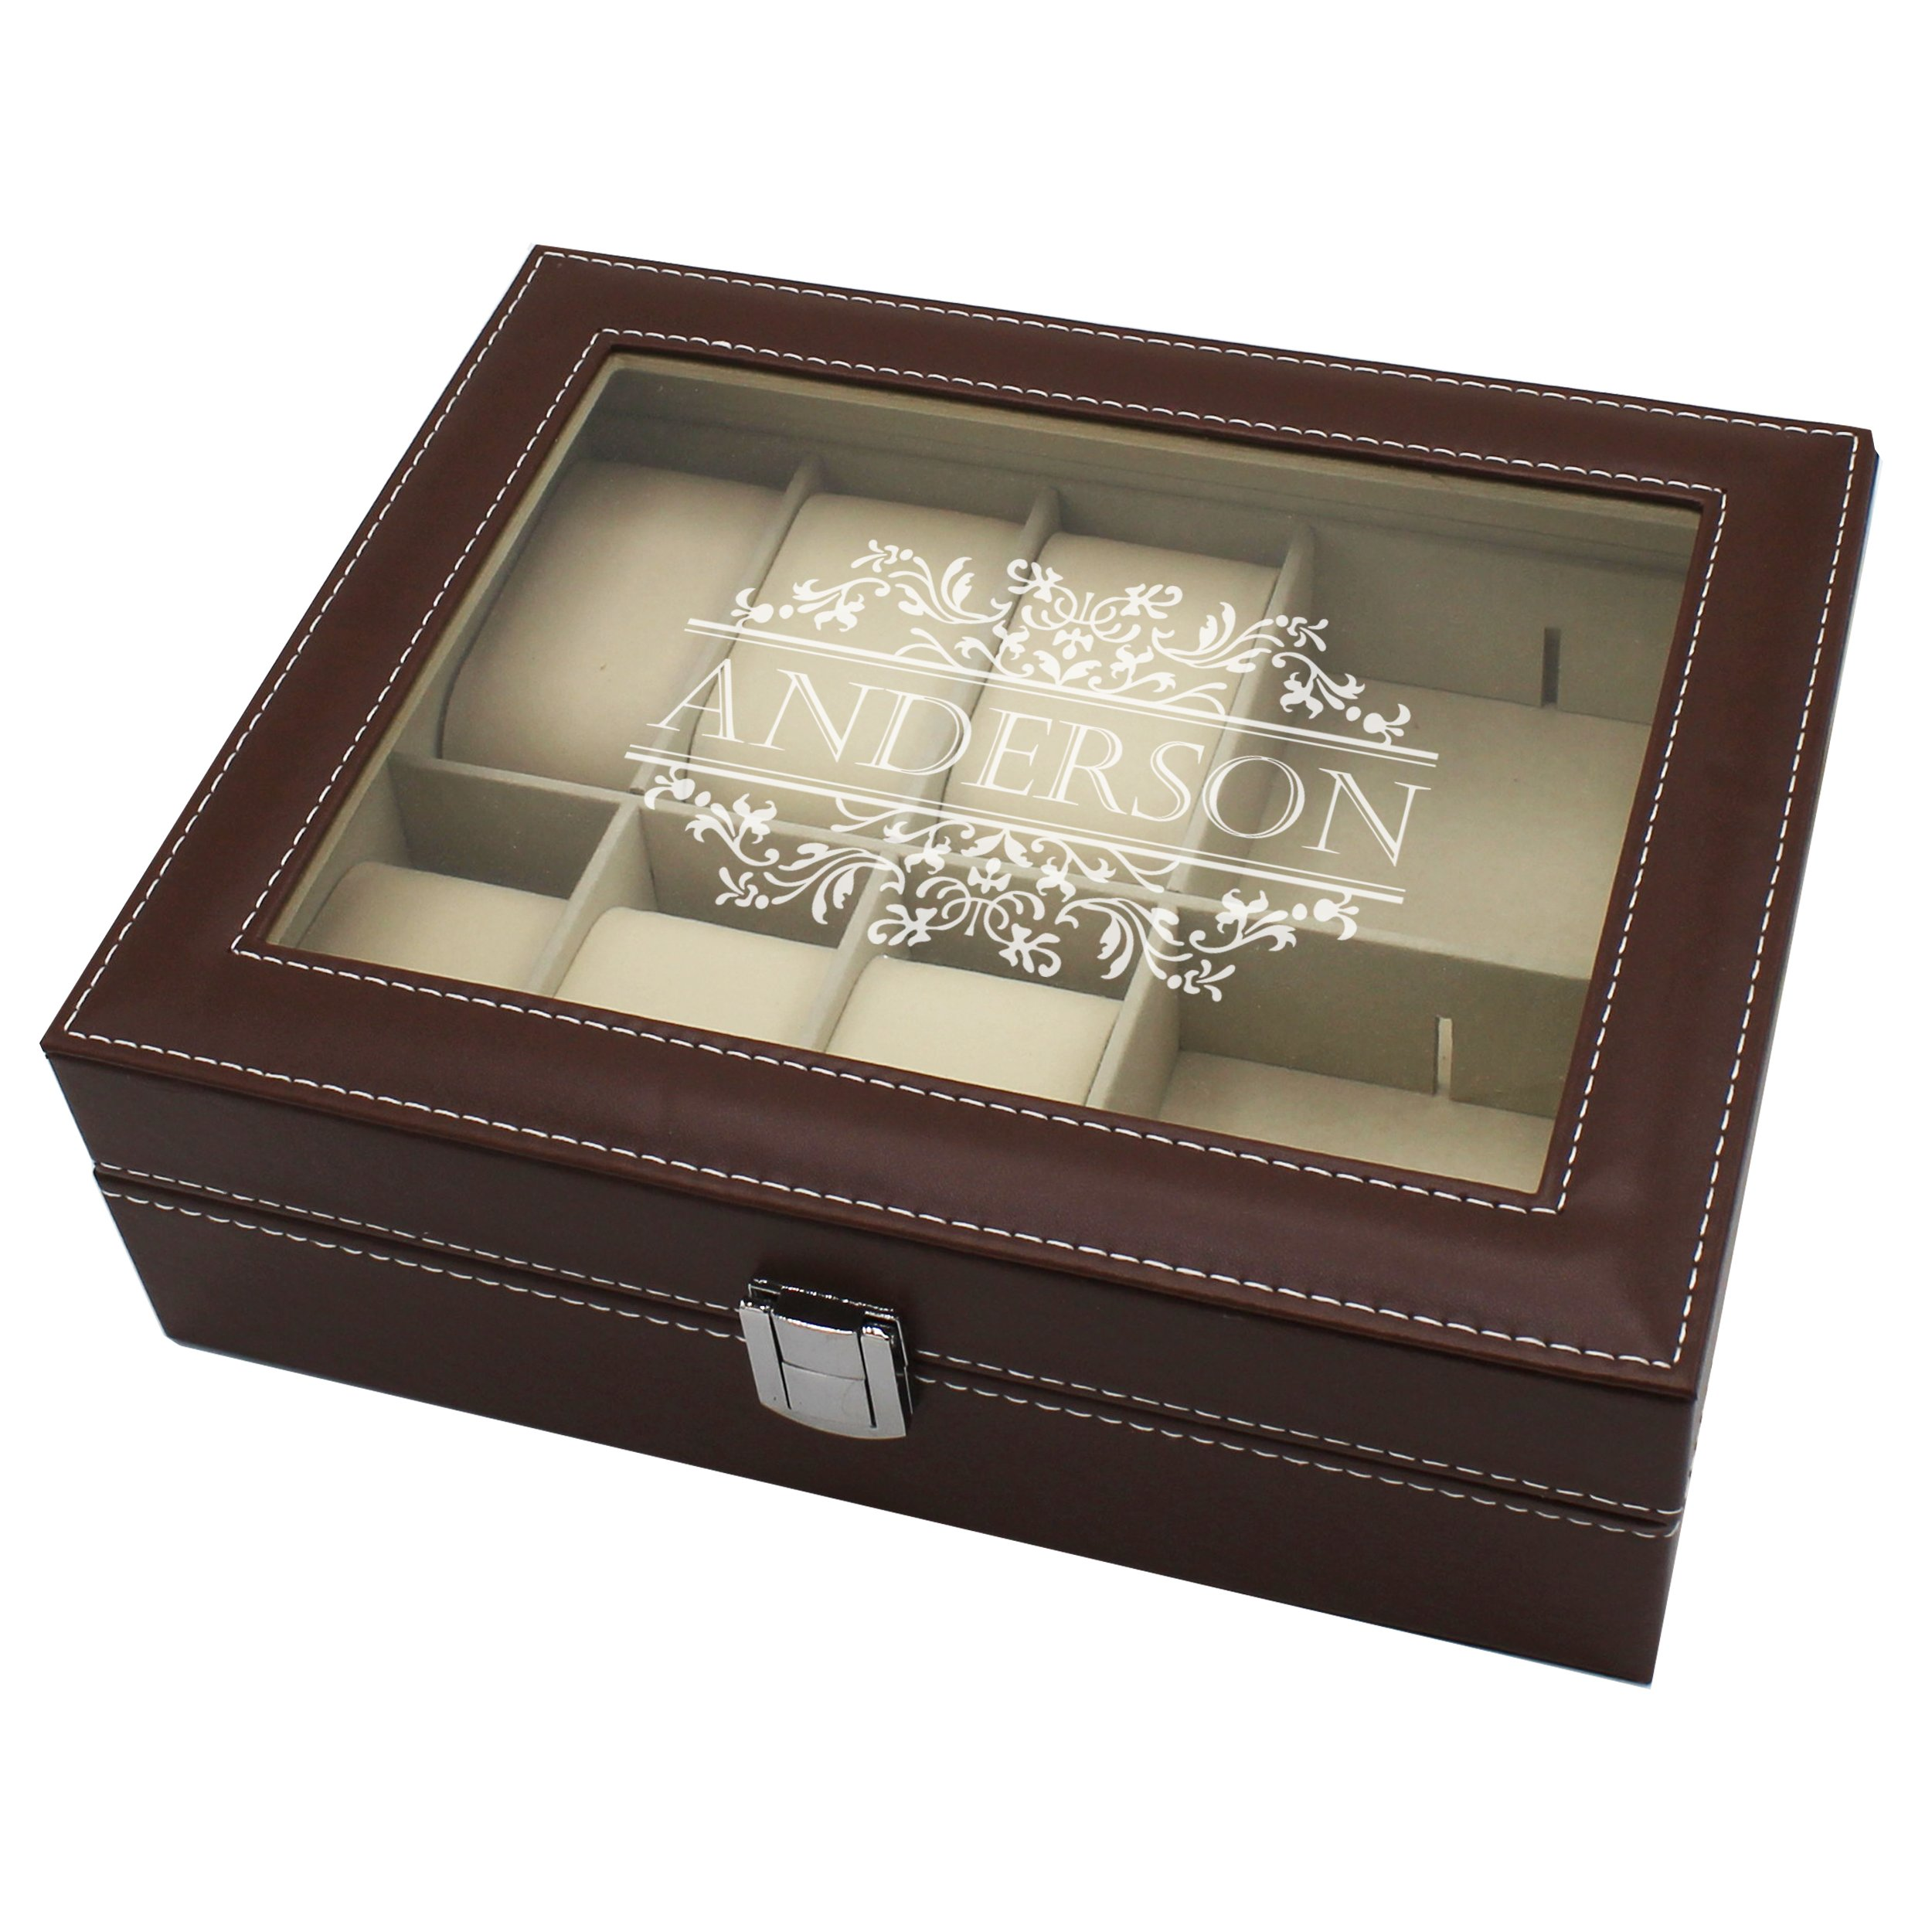 Engraved Jewelry Box Storage Holder Organizer - Custom Personalized Gifts for Her, Mom, Wife, Daughter (Brown)